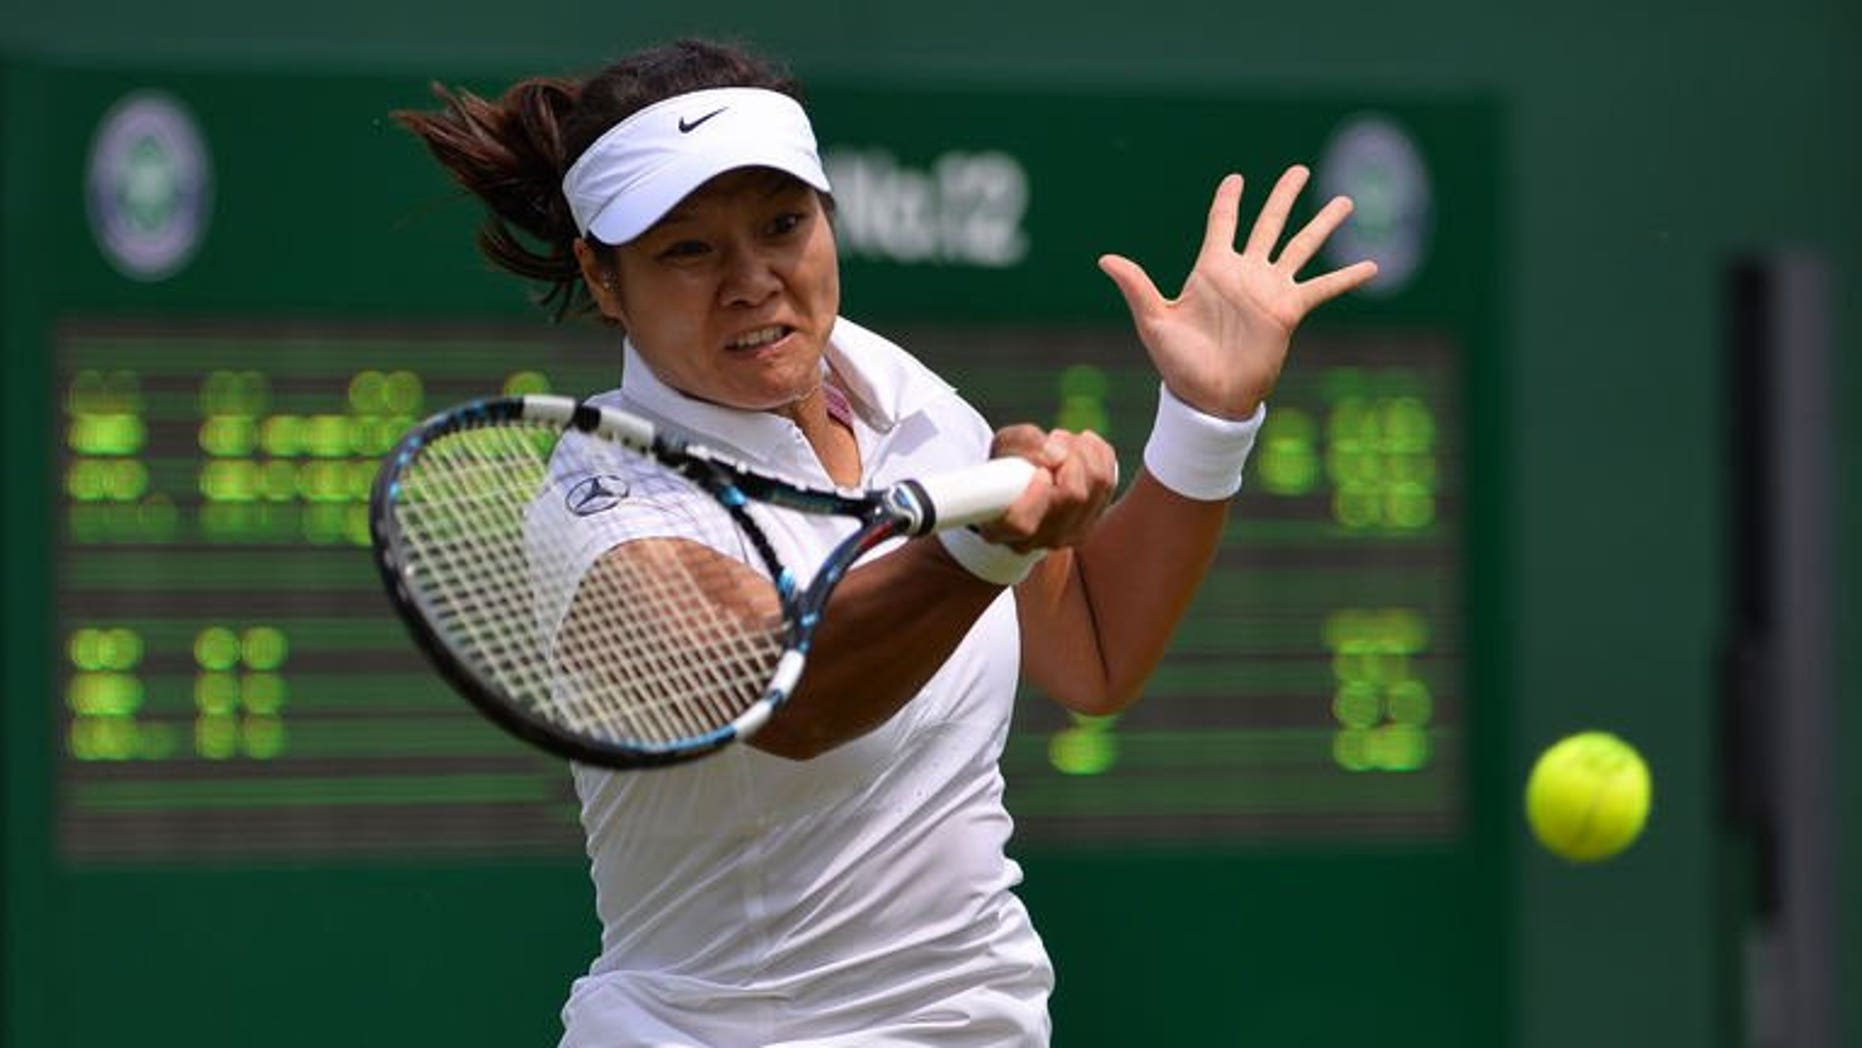 China's Li Na returns against Michaella Krajicek during their women's first round match on day two of the 2013 Wimbledon Championships tennis tournament at the All England Club in Wimbledon, southwest London, on June 25, 2013. Li won 6-1, 6-1.